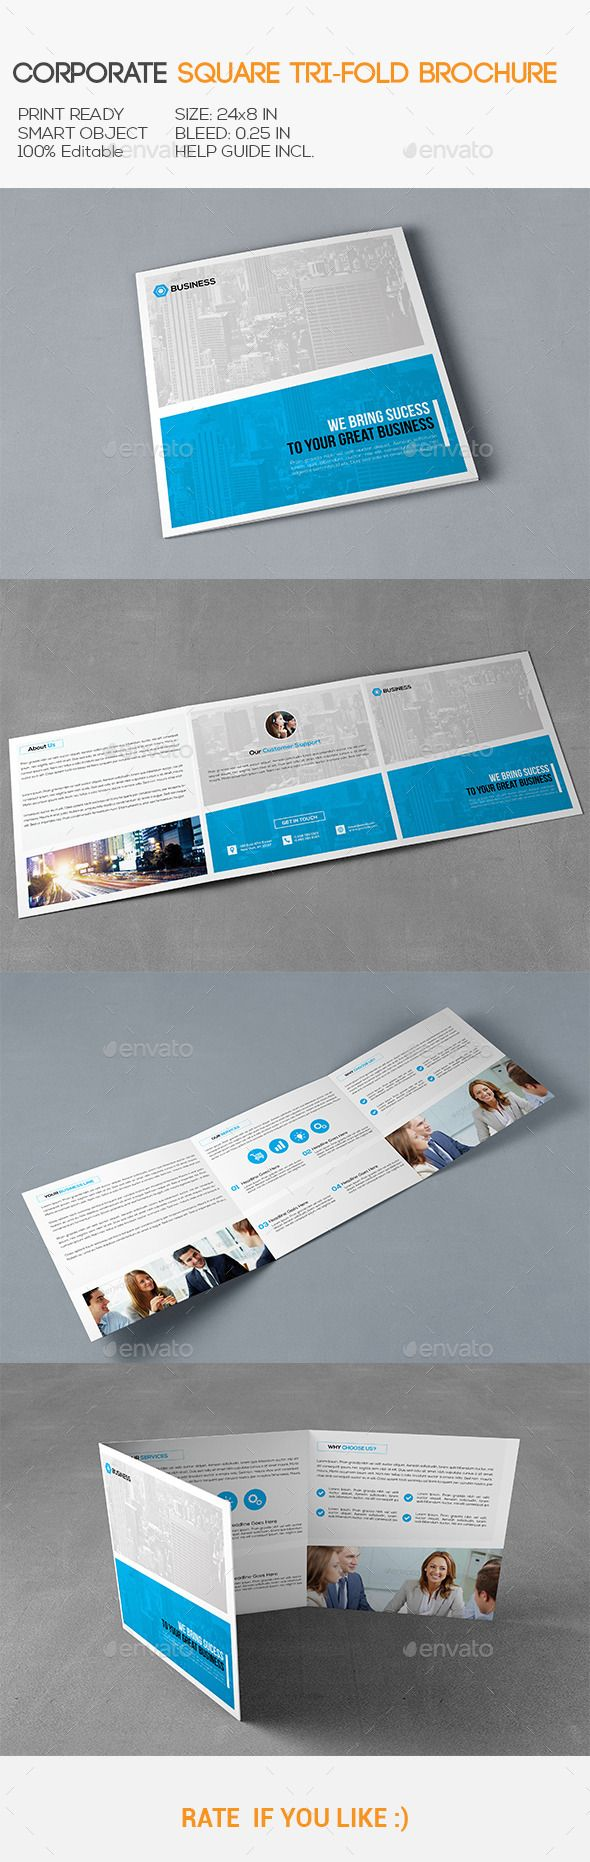 Square Corporate Trifold Brochure Design Template. Download: http://graphicriver.net/item/square-corporate-trifold-brochure/11357382?ref=ksioks